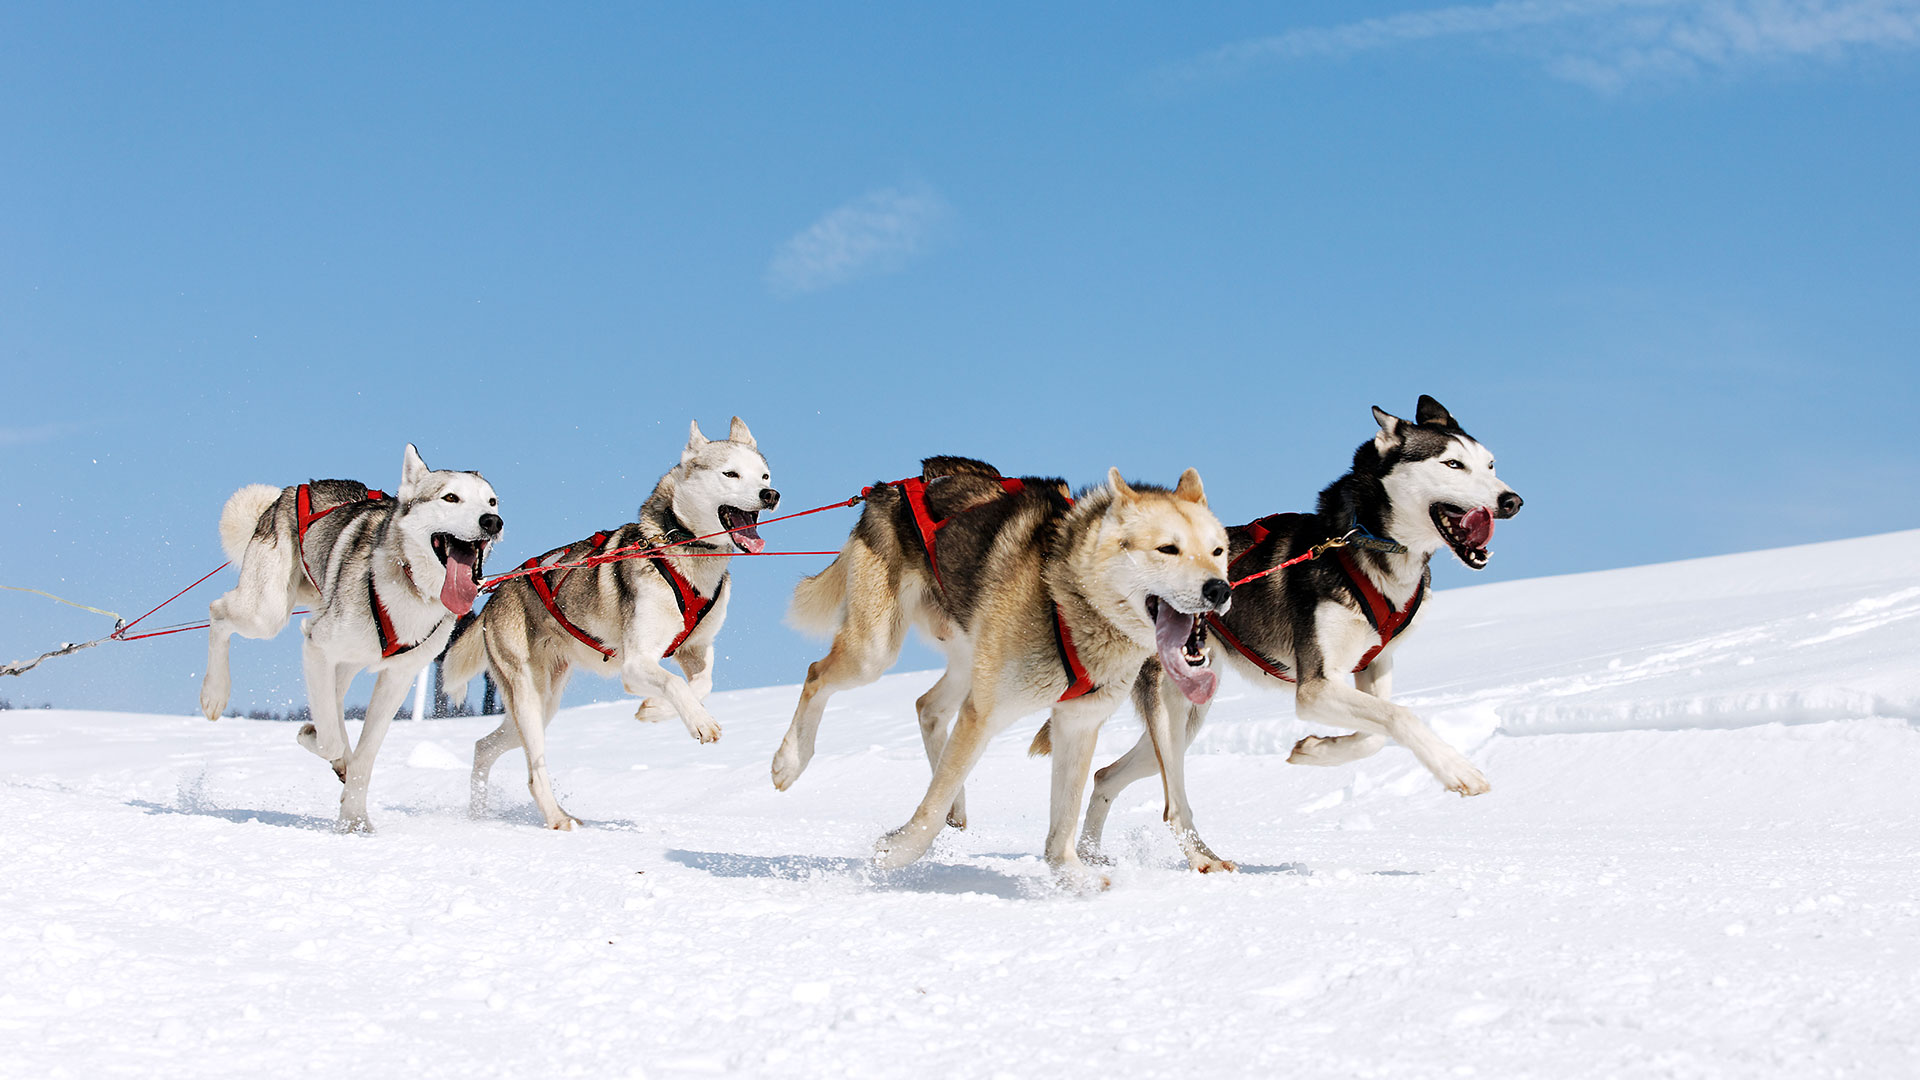 Husky Tour in the Wilderness of Lapland - 4 Days 3 Nights ...